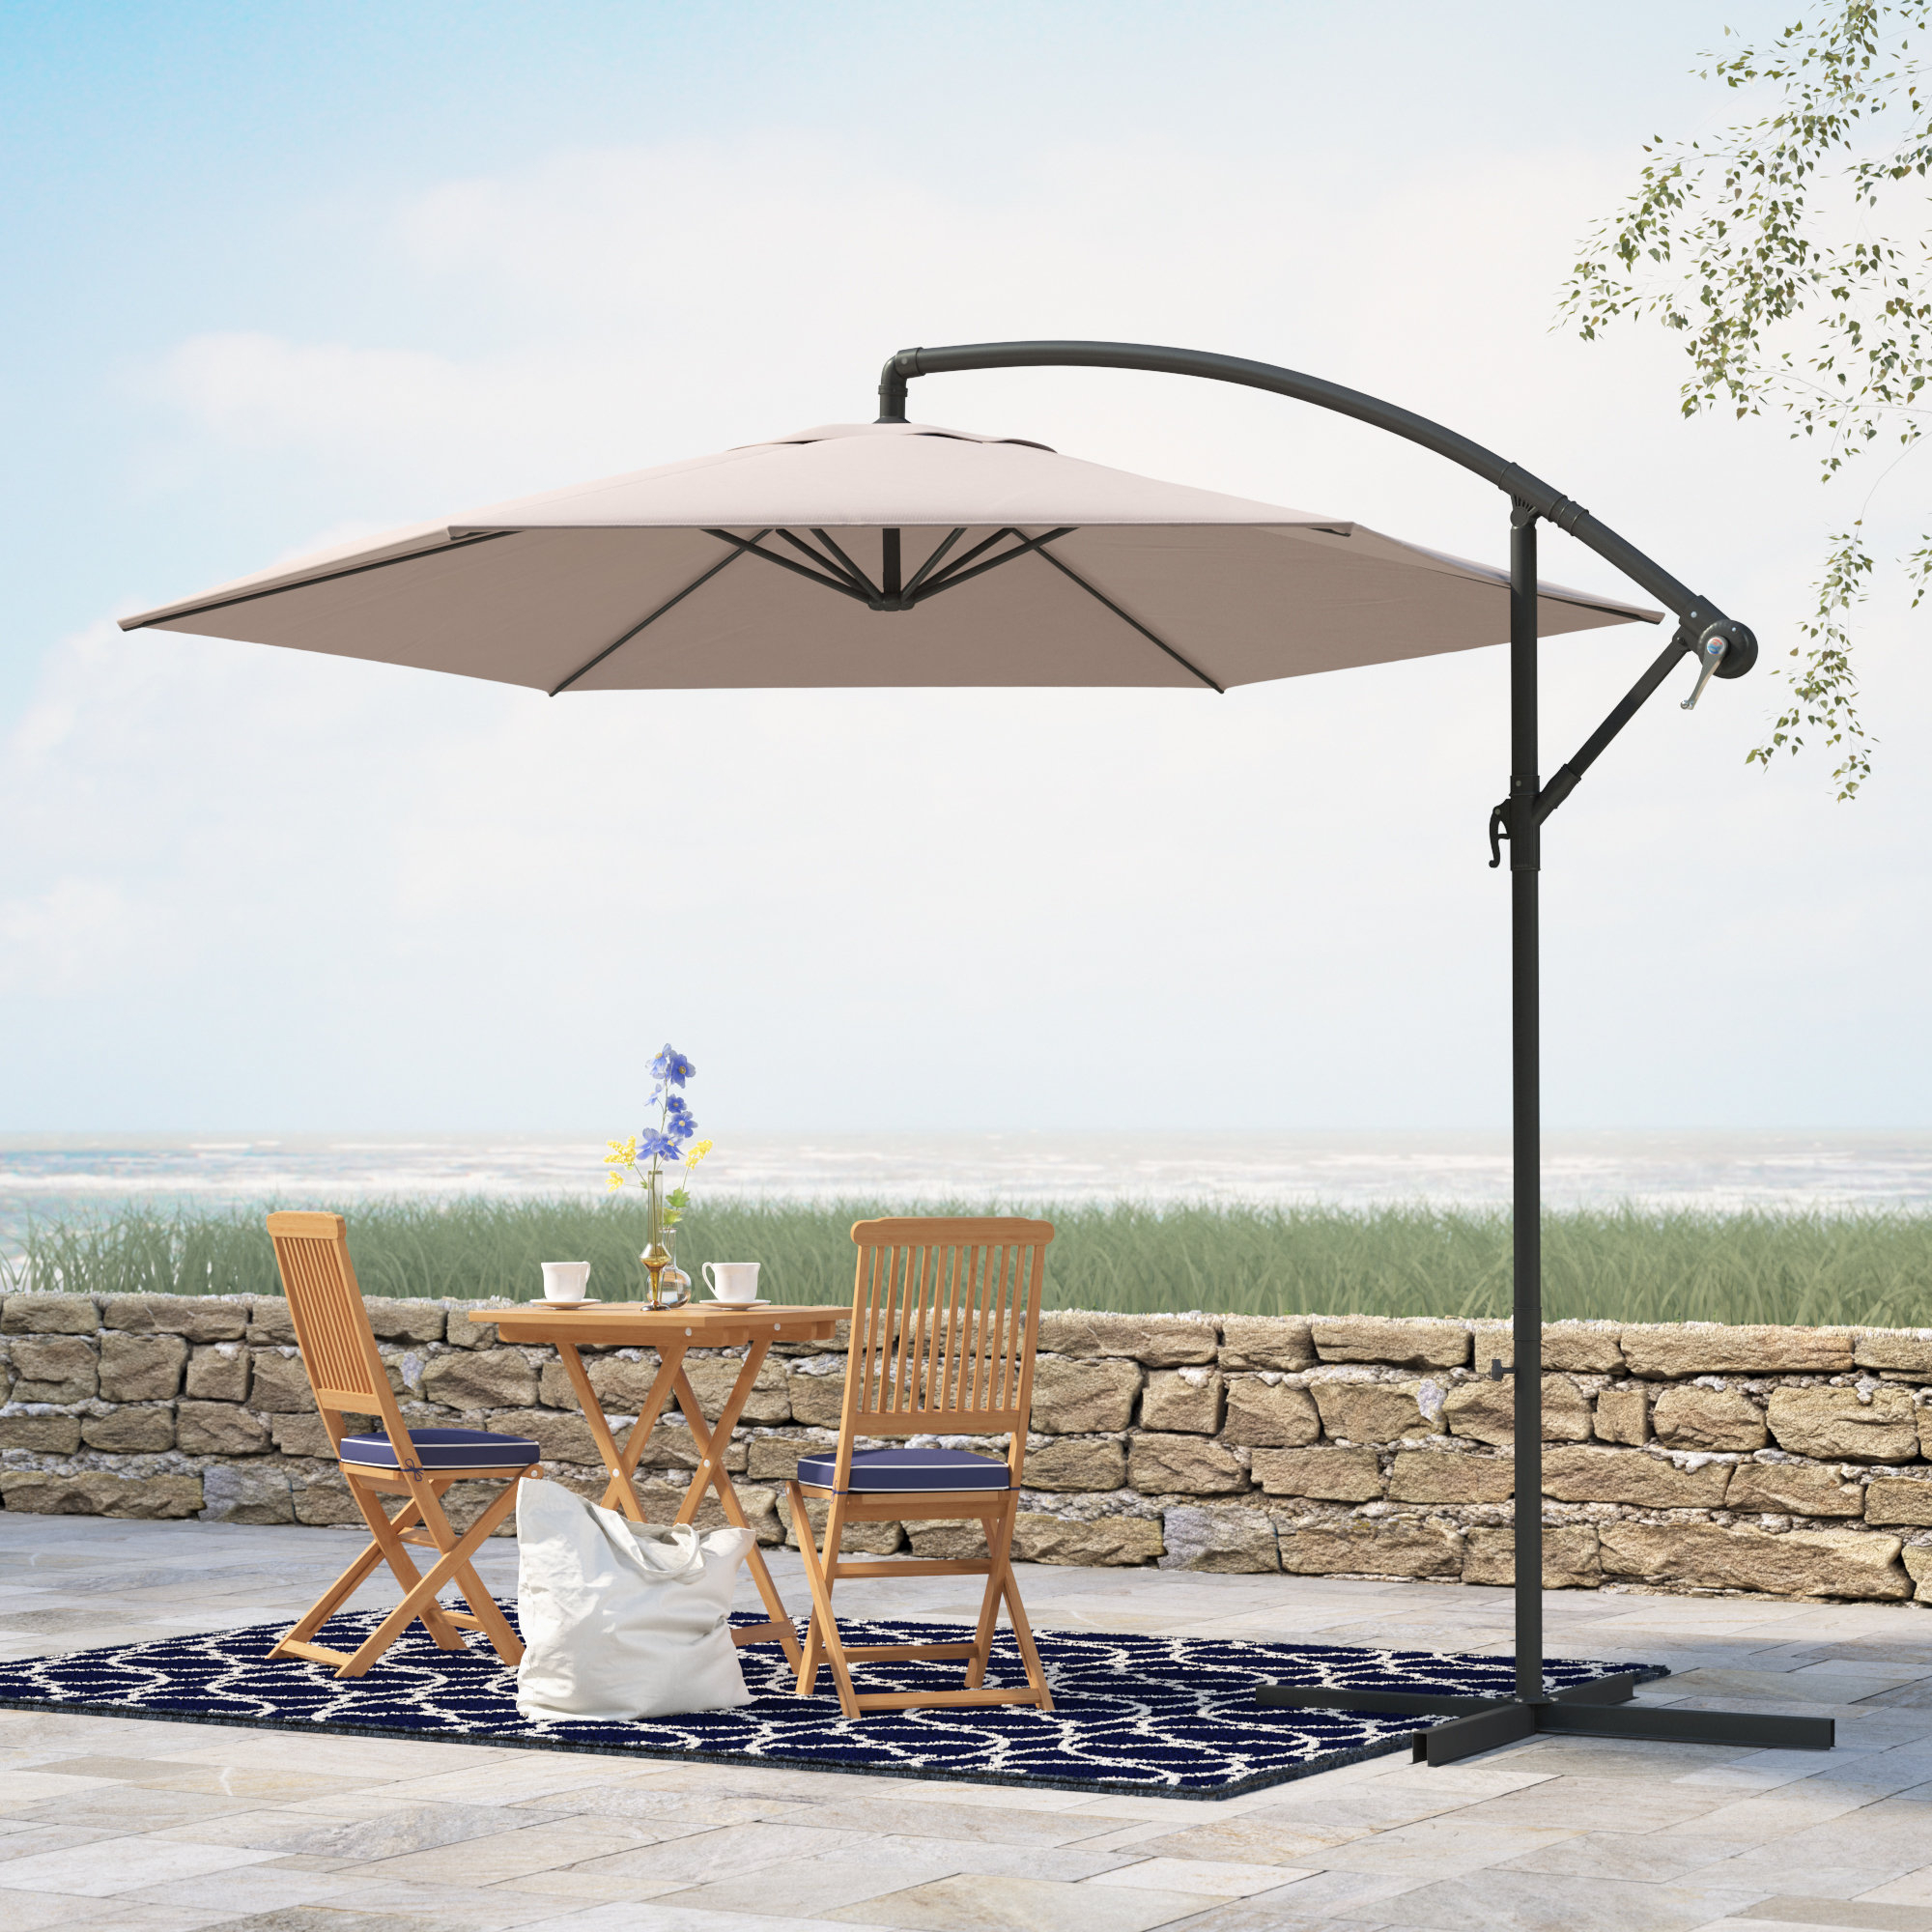 2019 Alyssa 10' Cantilever Umbrella Regarding Iyanna Cantilever Umbrellas (View 4 of 20)